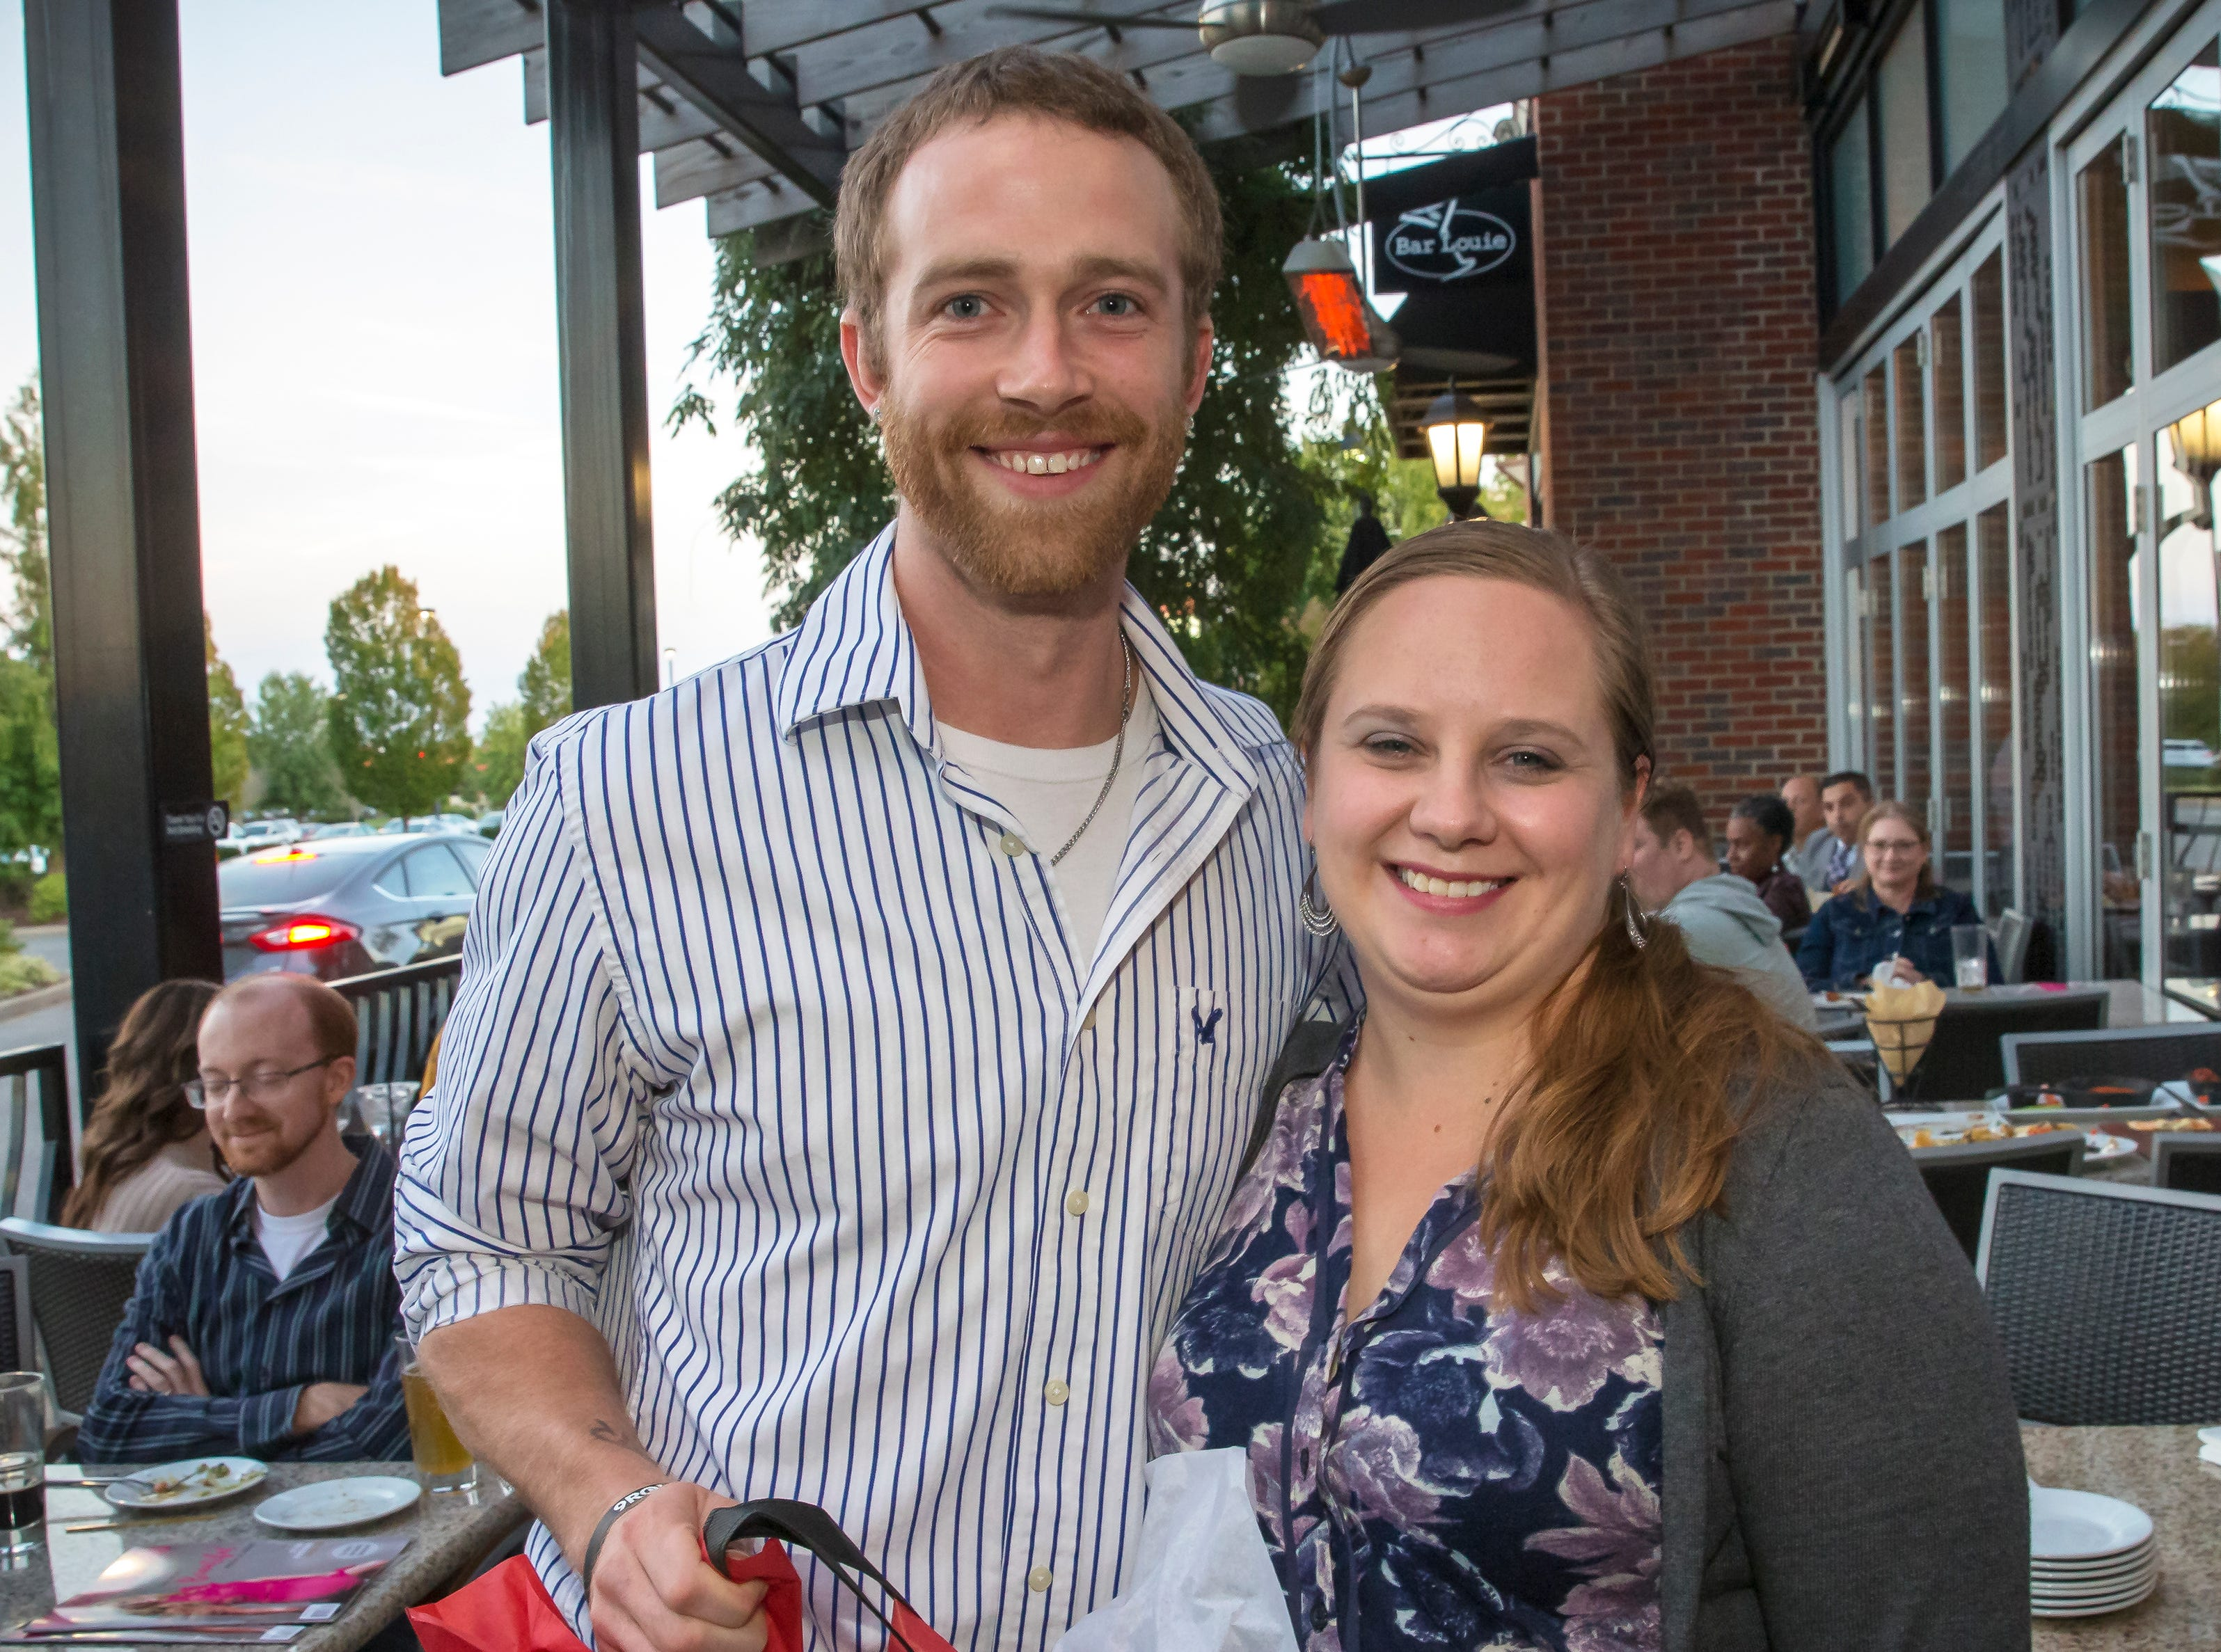 Chase Hamlin and Sarah Clark at the Murfreesboro Magazine Most Beautiful People event held at Bar Louie.